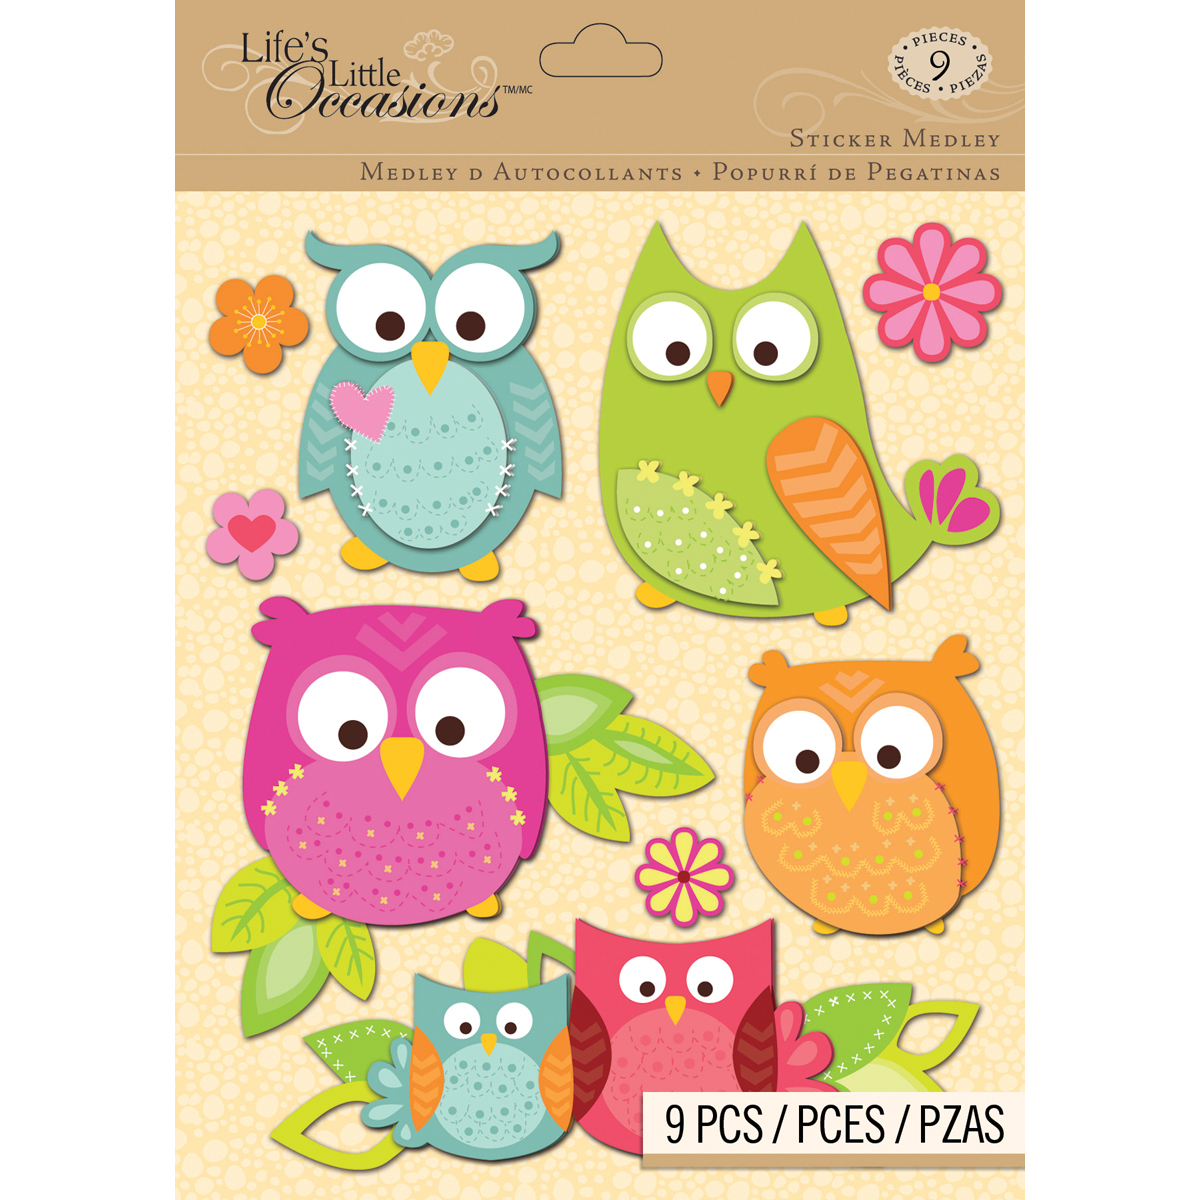 Lifes Little Occasions Sticker Medley-Owl Multi-Colored